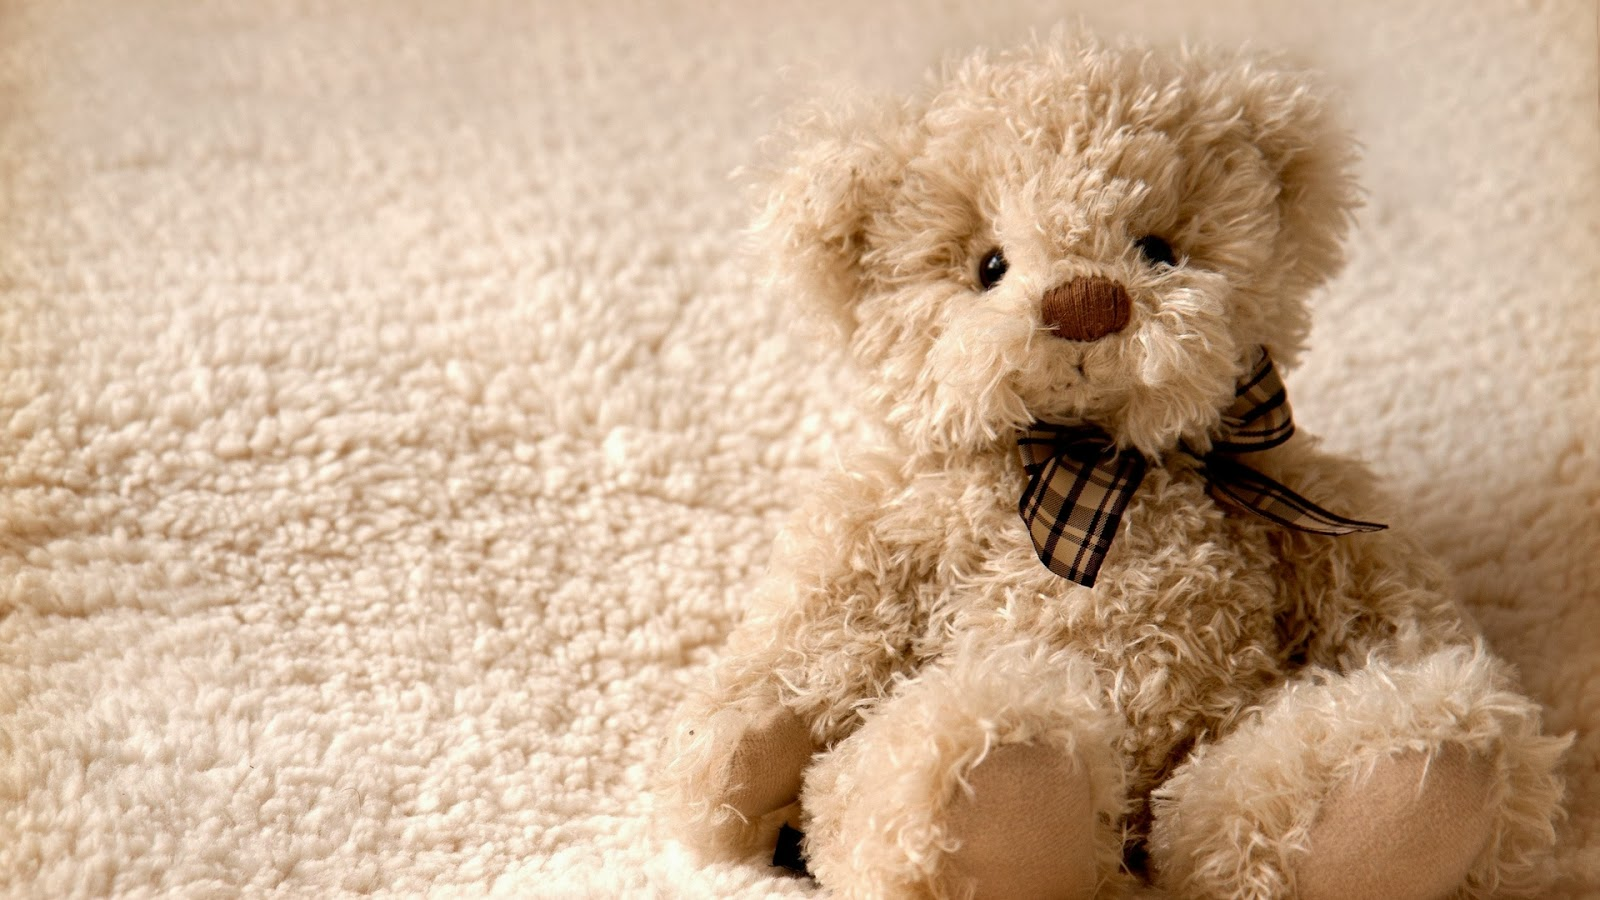 Teddy Bear Wallpaper PC Computer